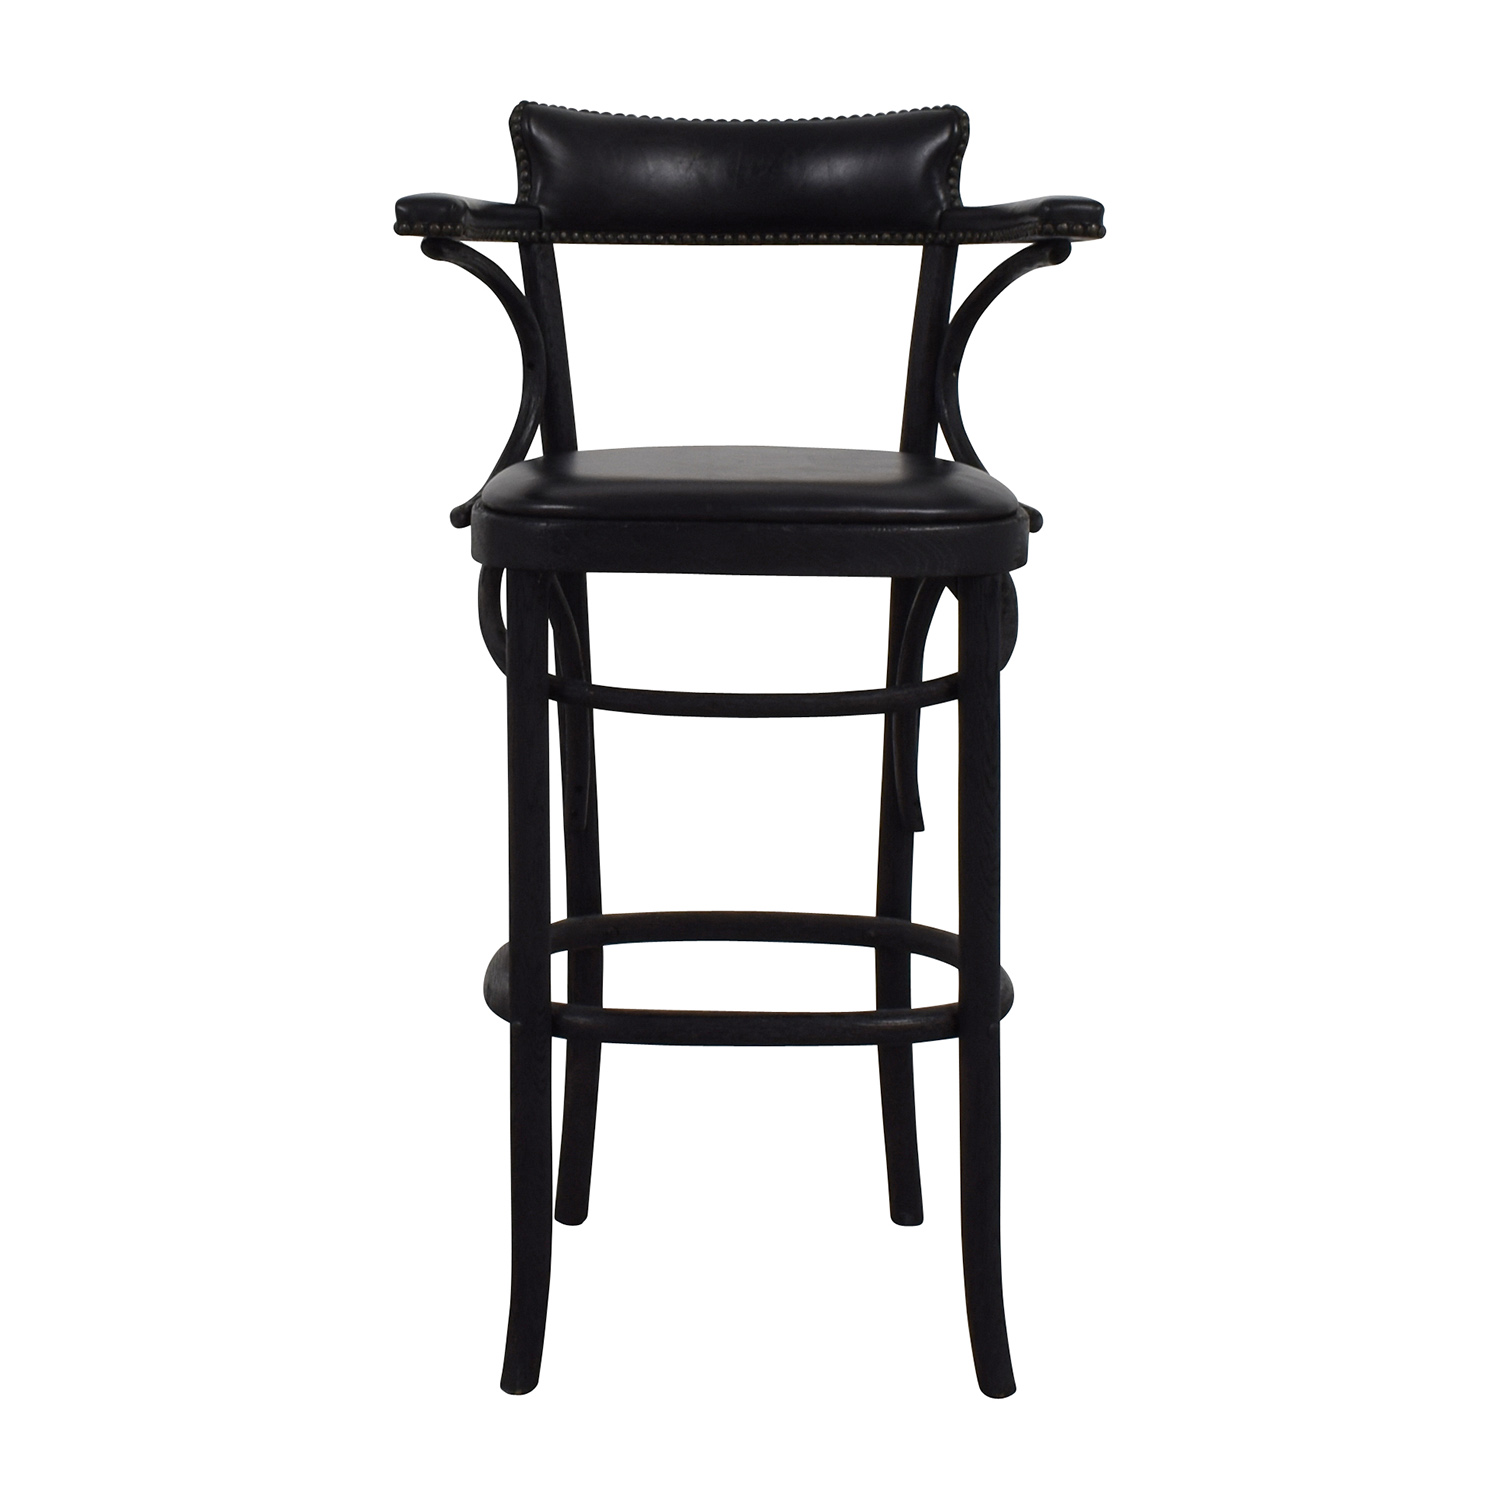 Restoration Hardware Vienna Cafe Leather Stool sale